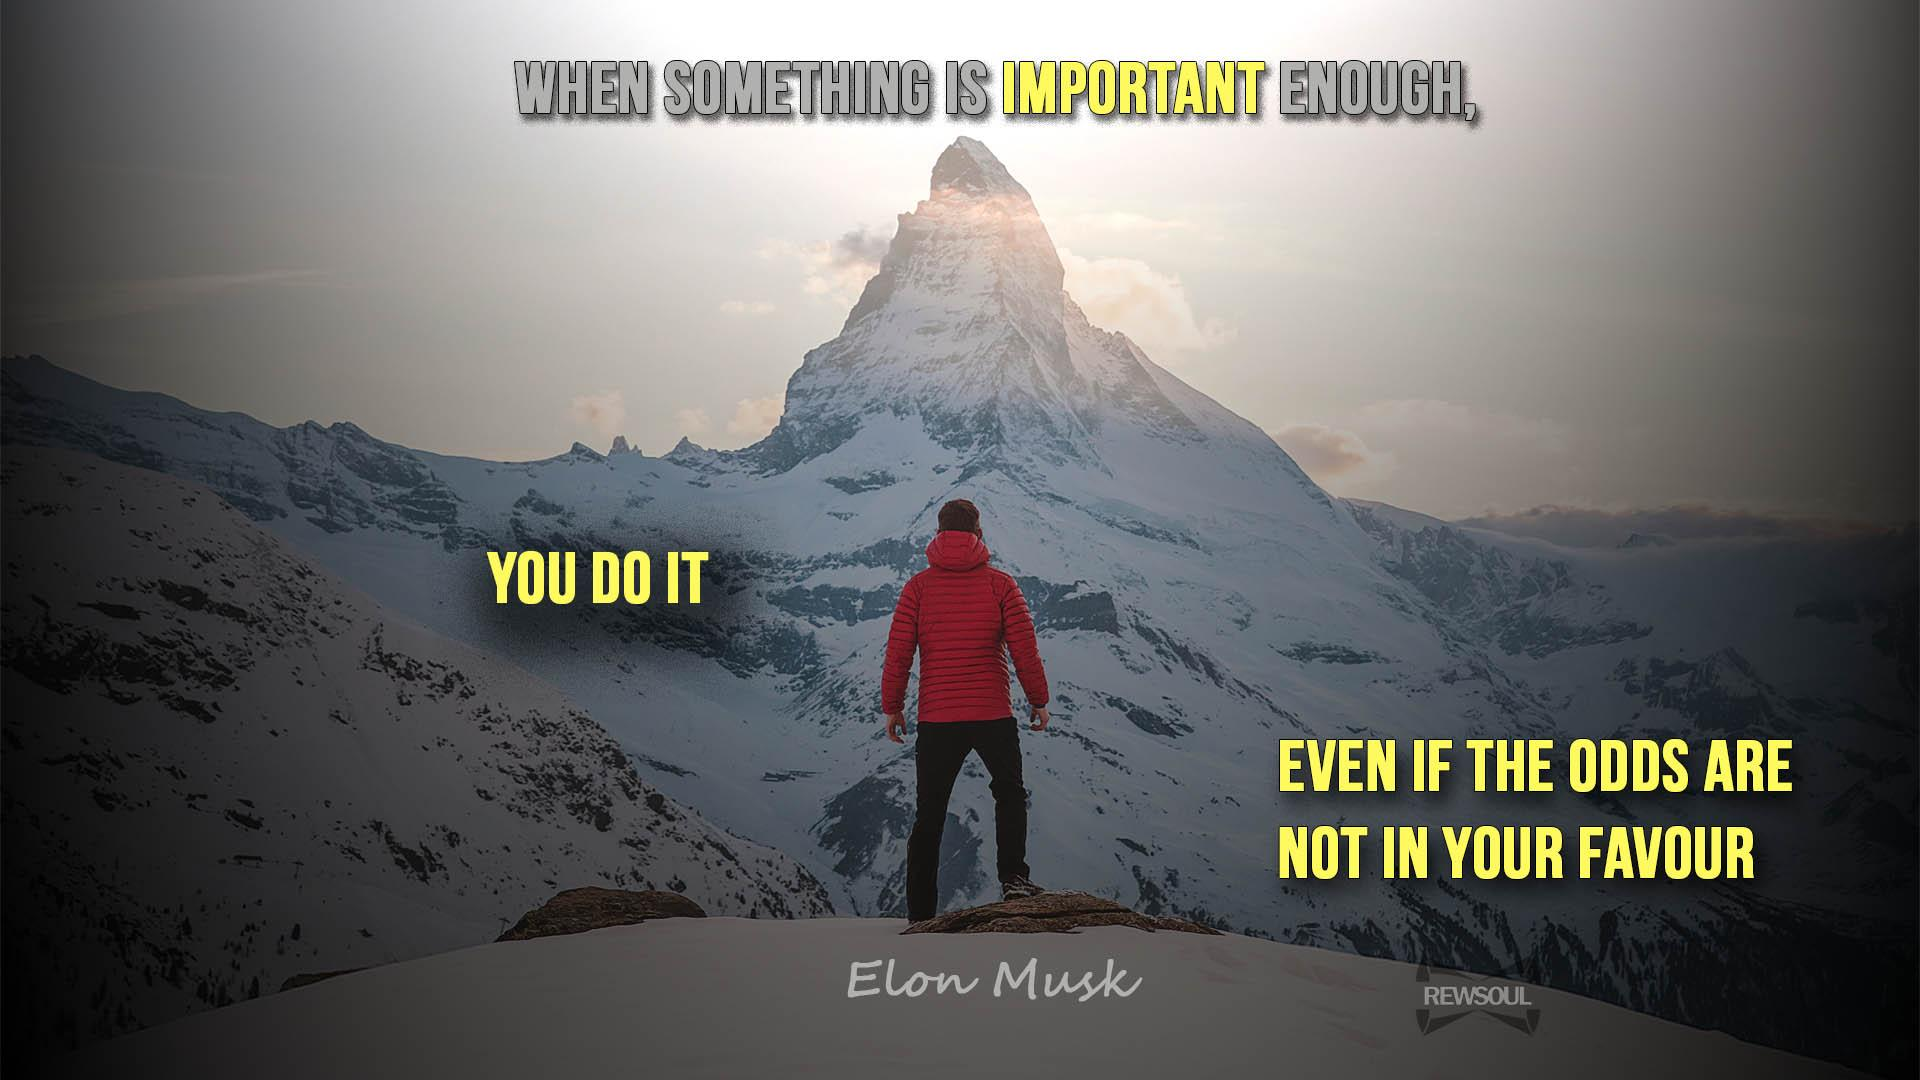 [Image] When something is important enough, you Do it even if the odds are not in your favour.